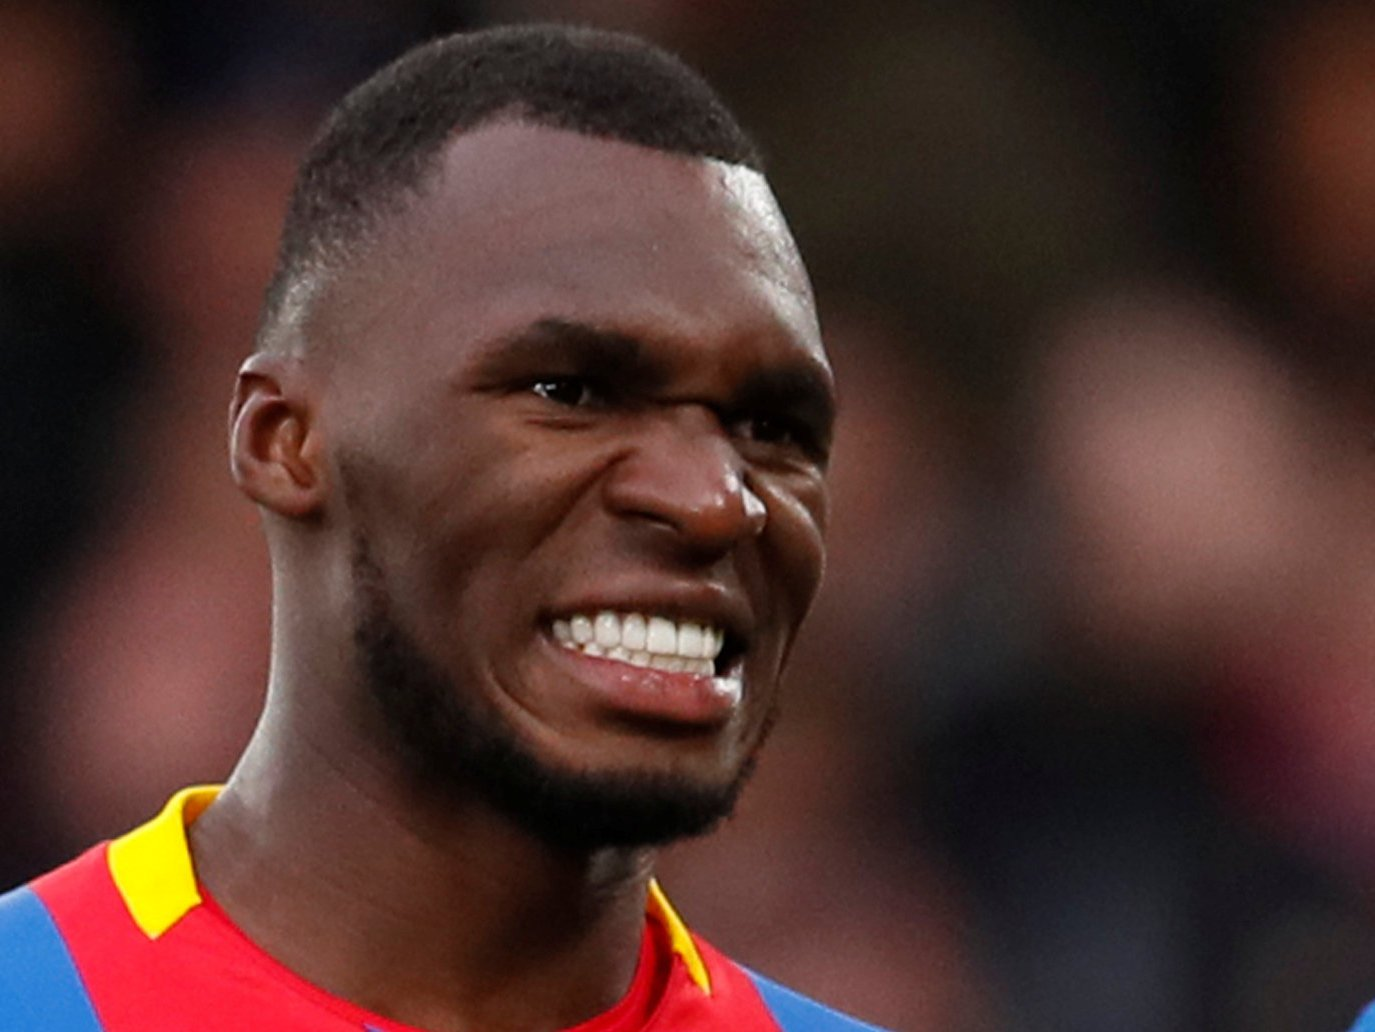 Crystal Palace Christian Benteke - Significant update on player's future will cost Crystal Palace millions - opinion